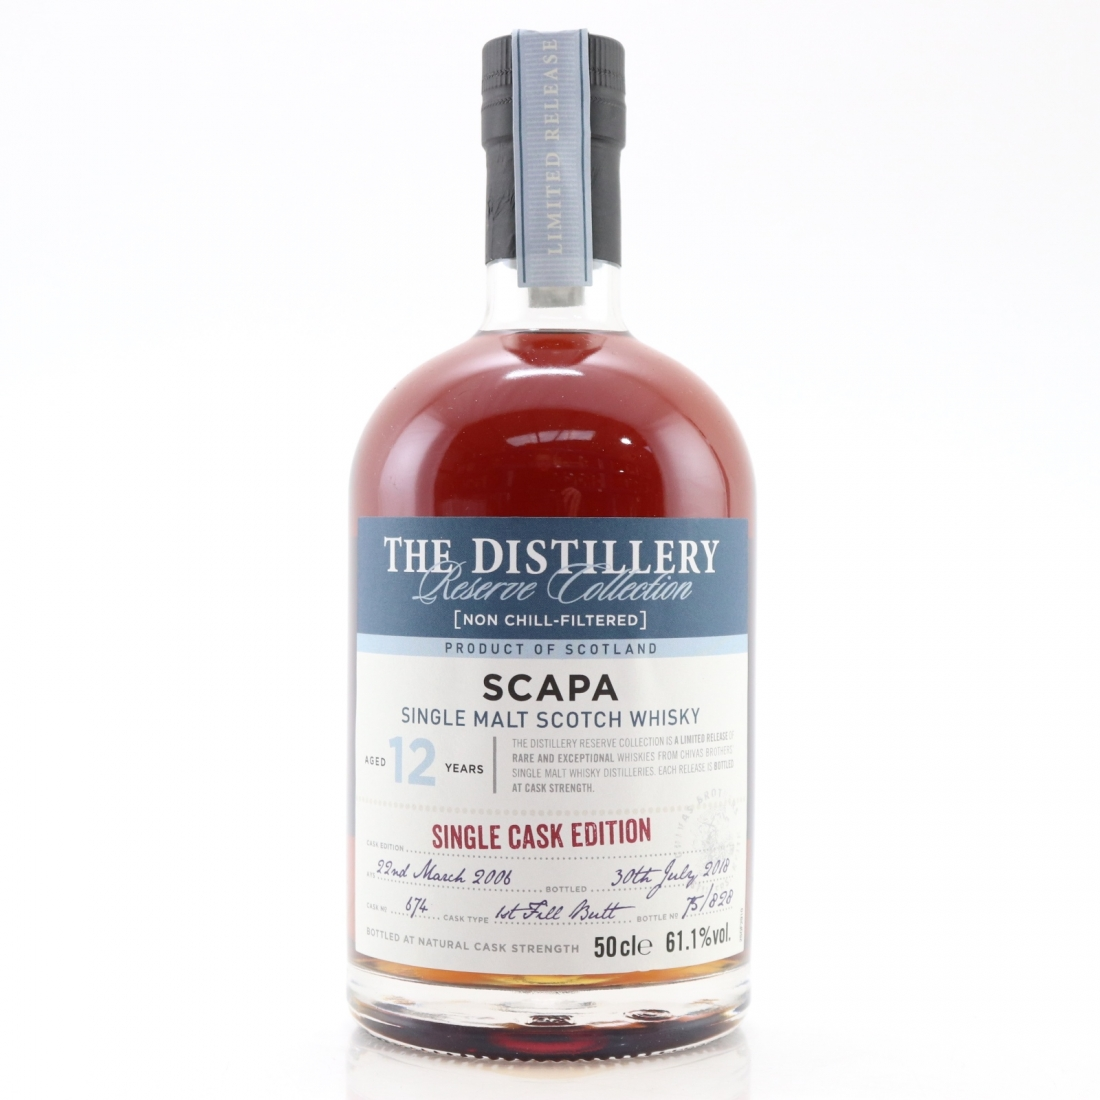 Scapa 2006 Reserve Collection 12 Year Old / Single Cask Edition